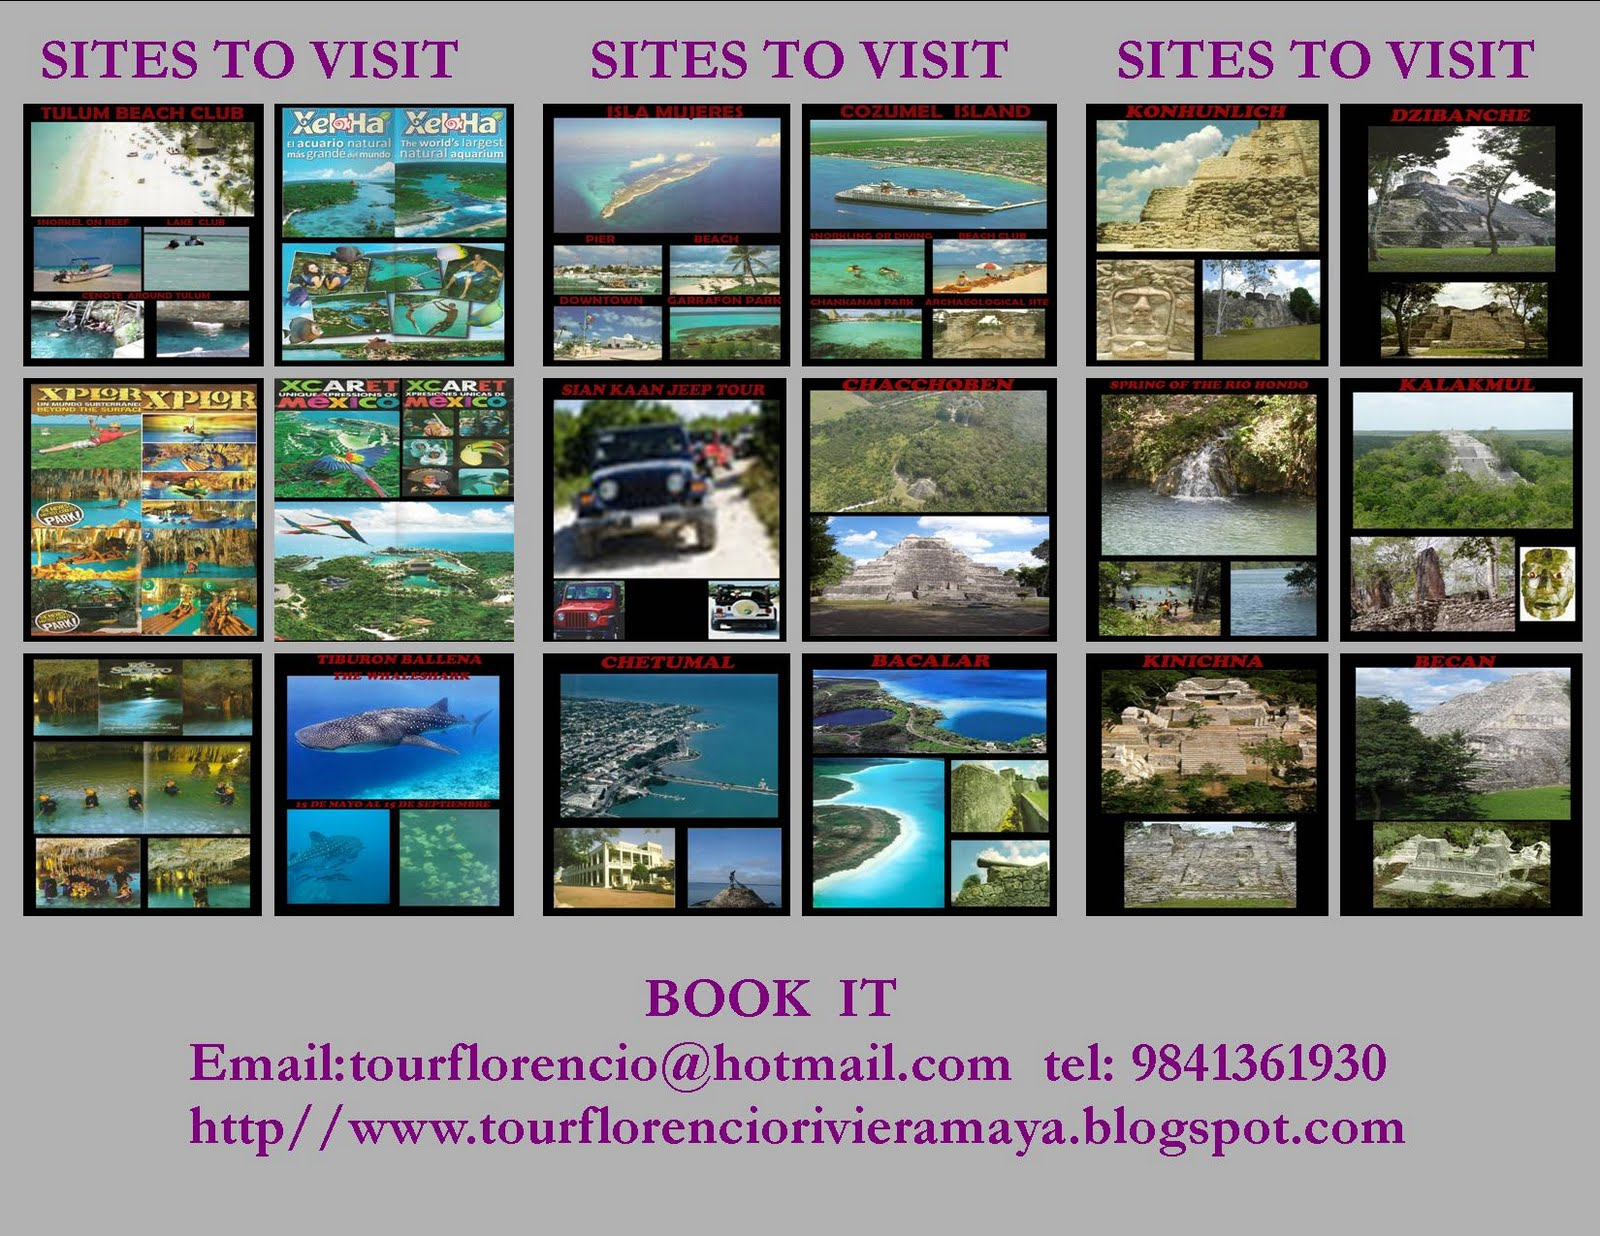 SITES TO VISIT